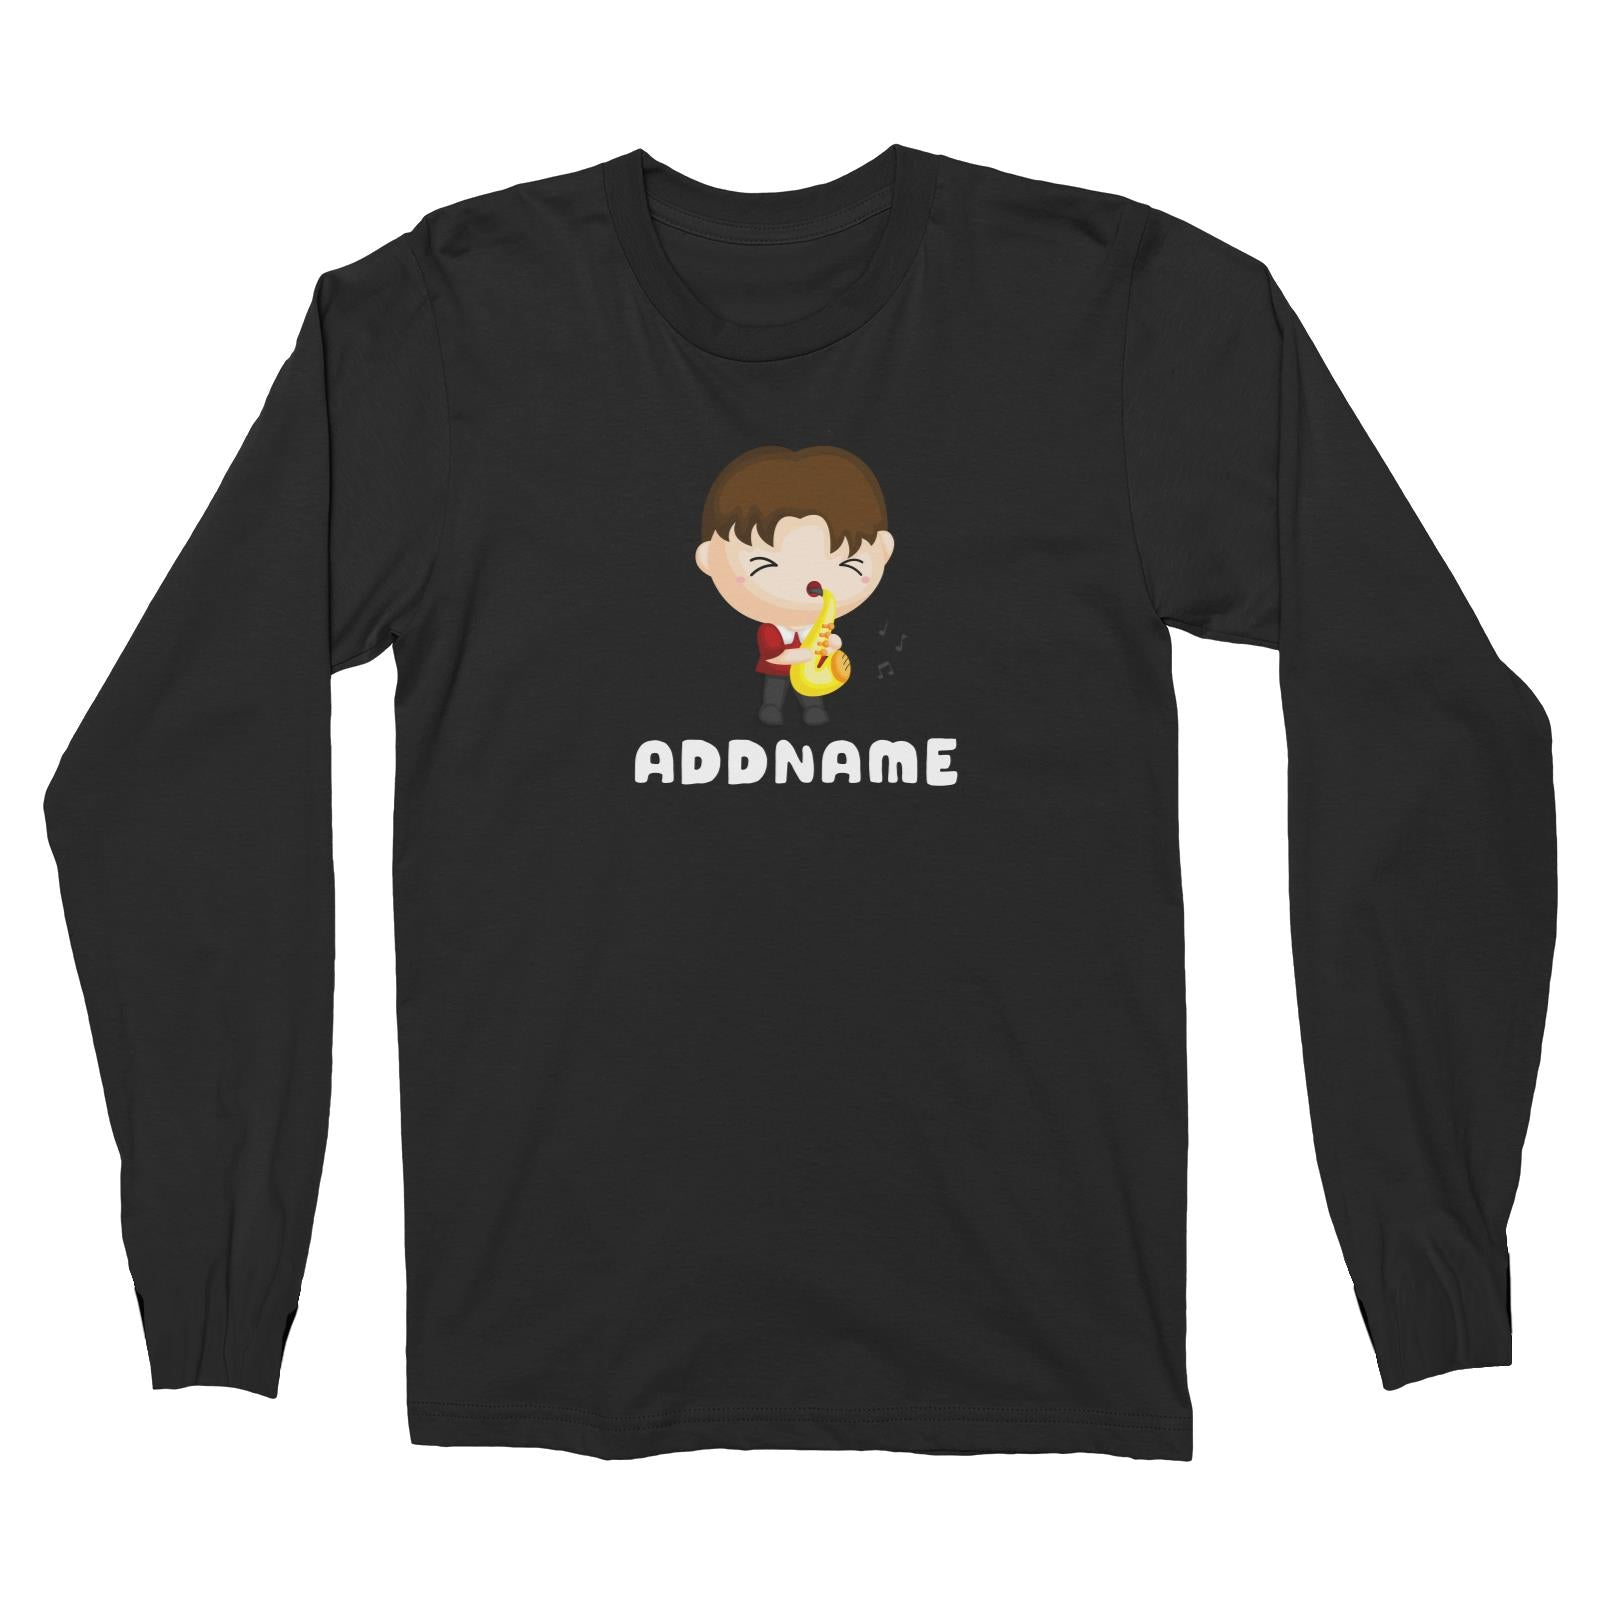 Birthday Music Band Boy Playing Saxophone Addname Long Sleeve Unisex T-Shirt